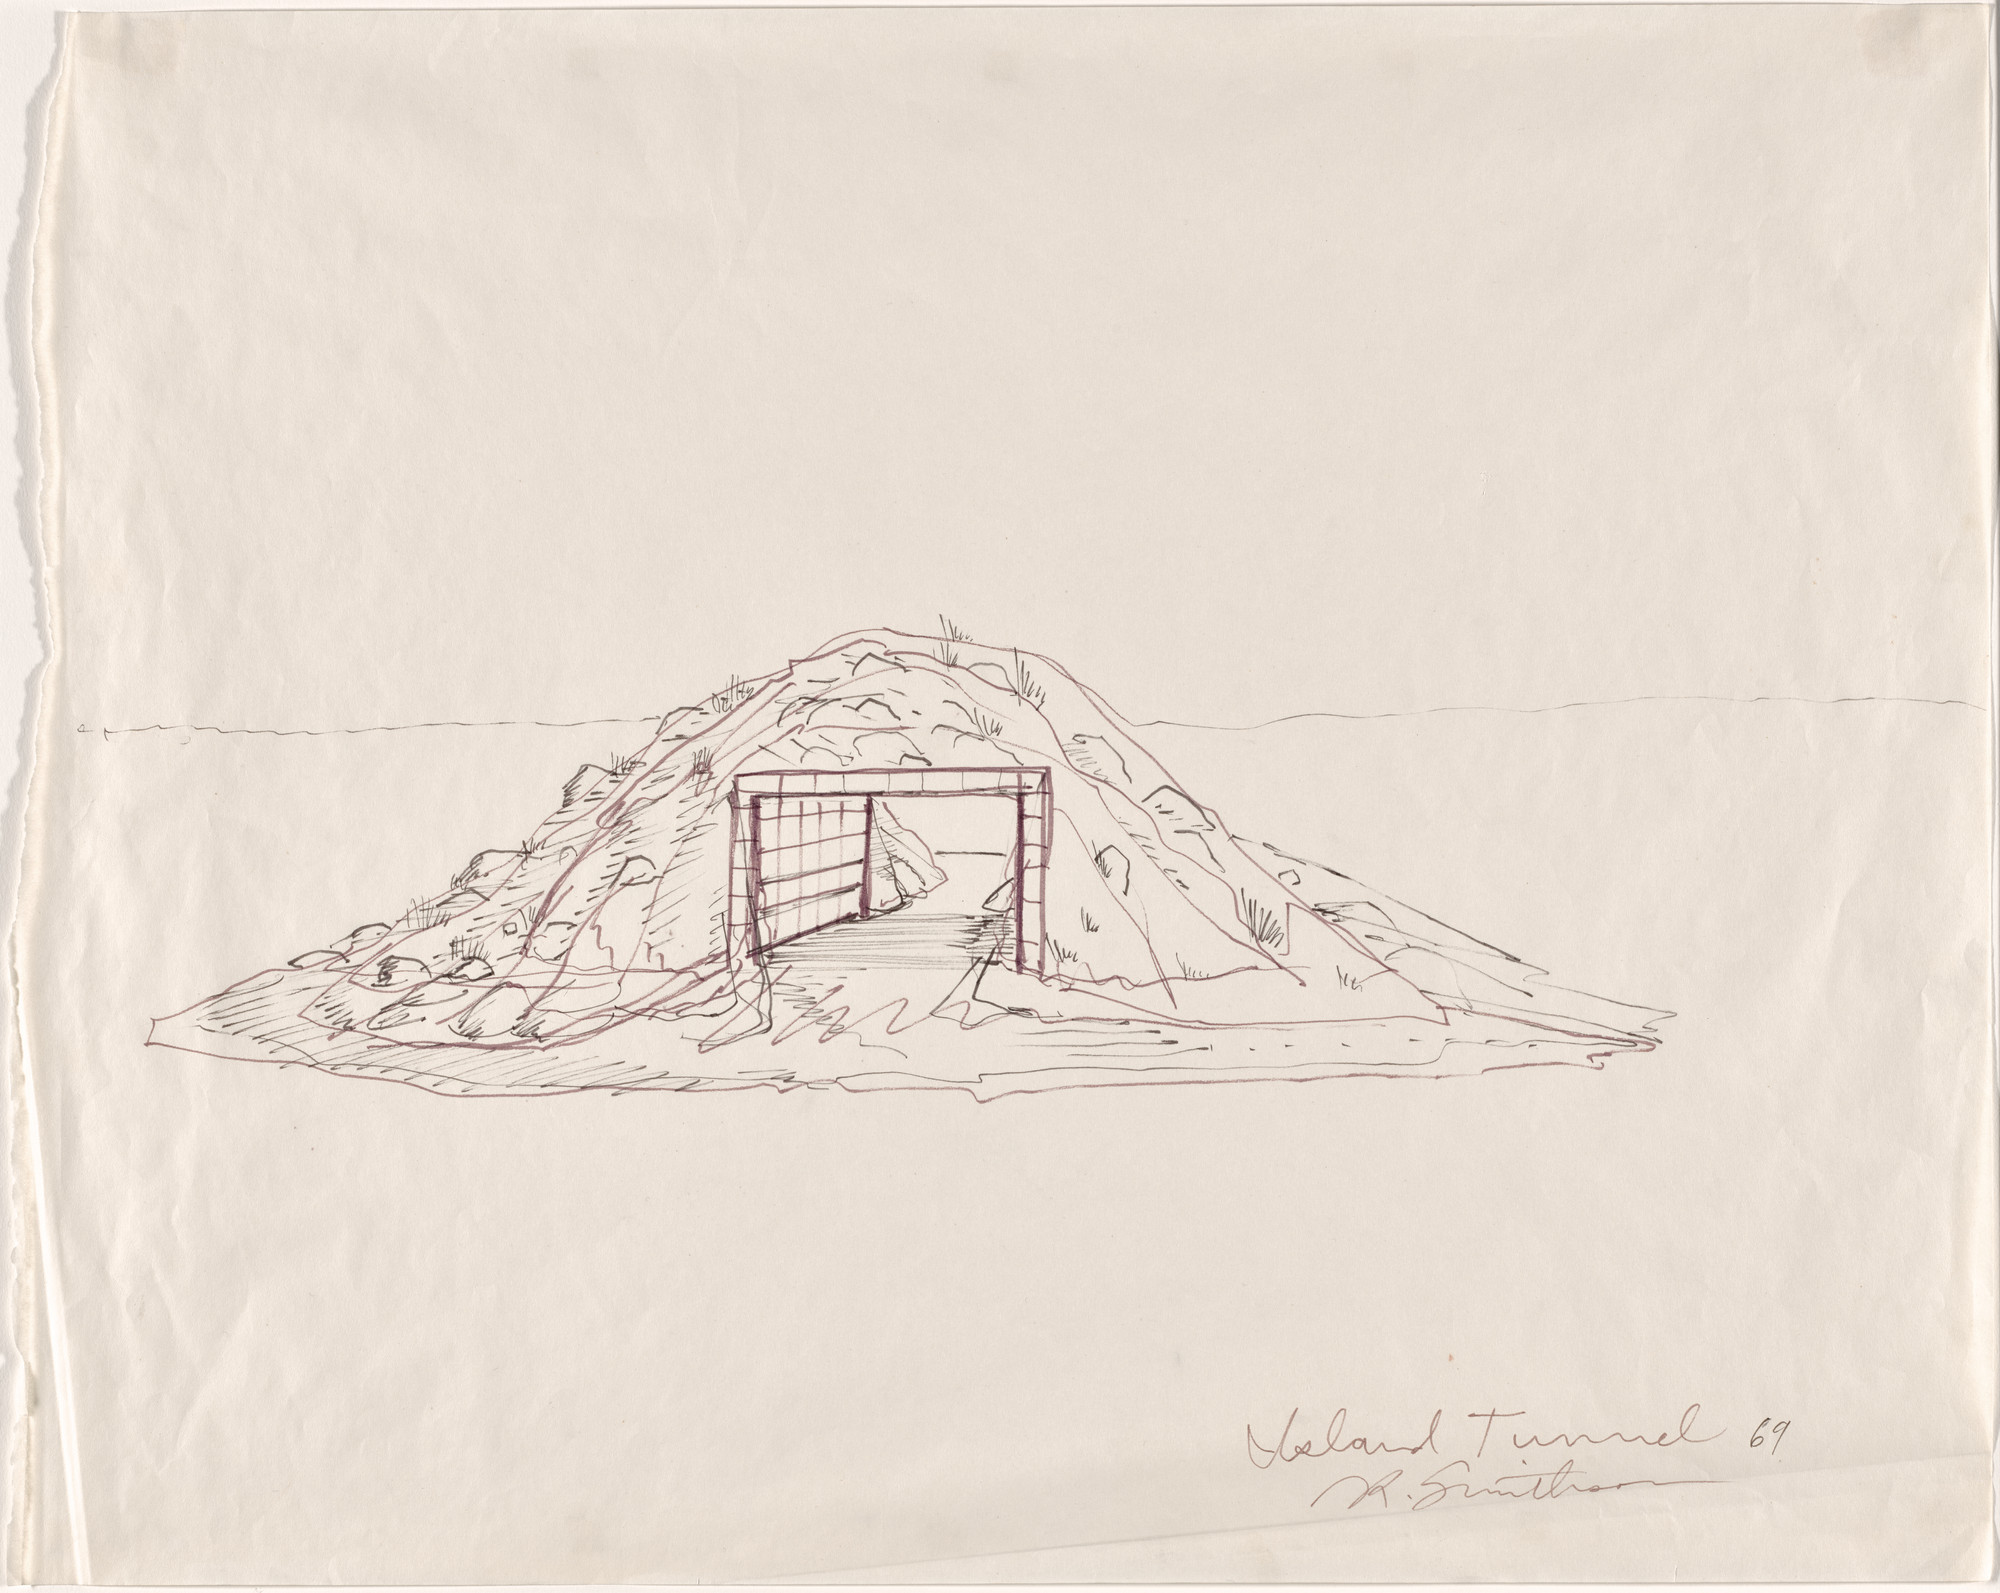 Robert Smithson. Island Tunnel. 1969